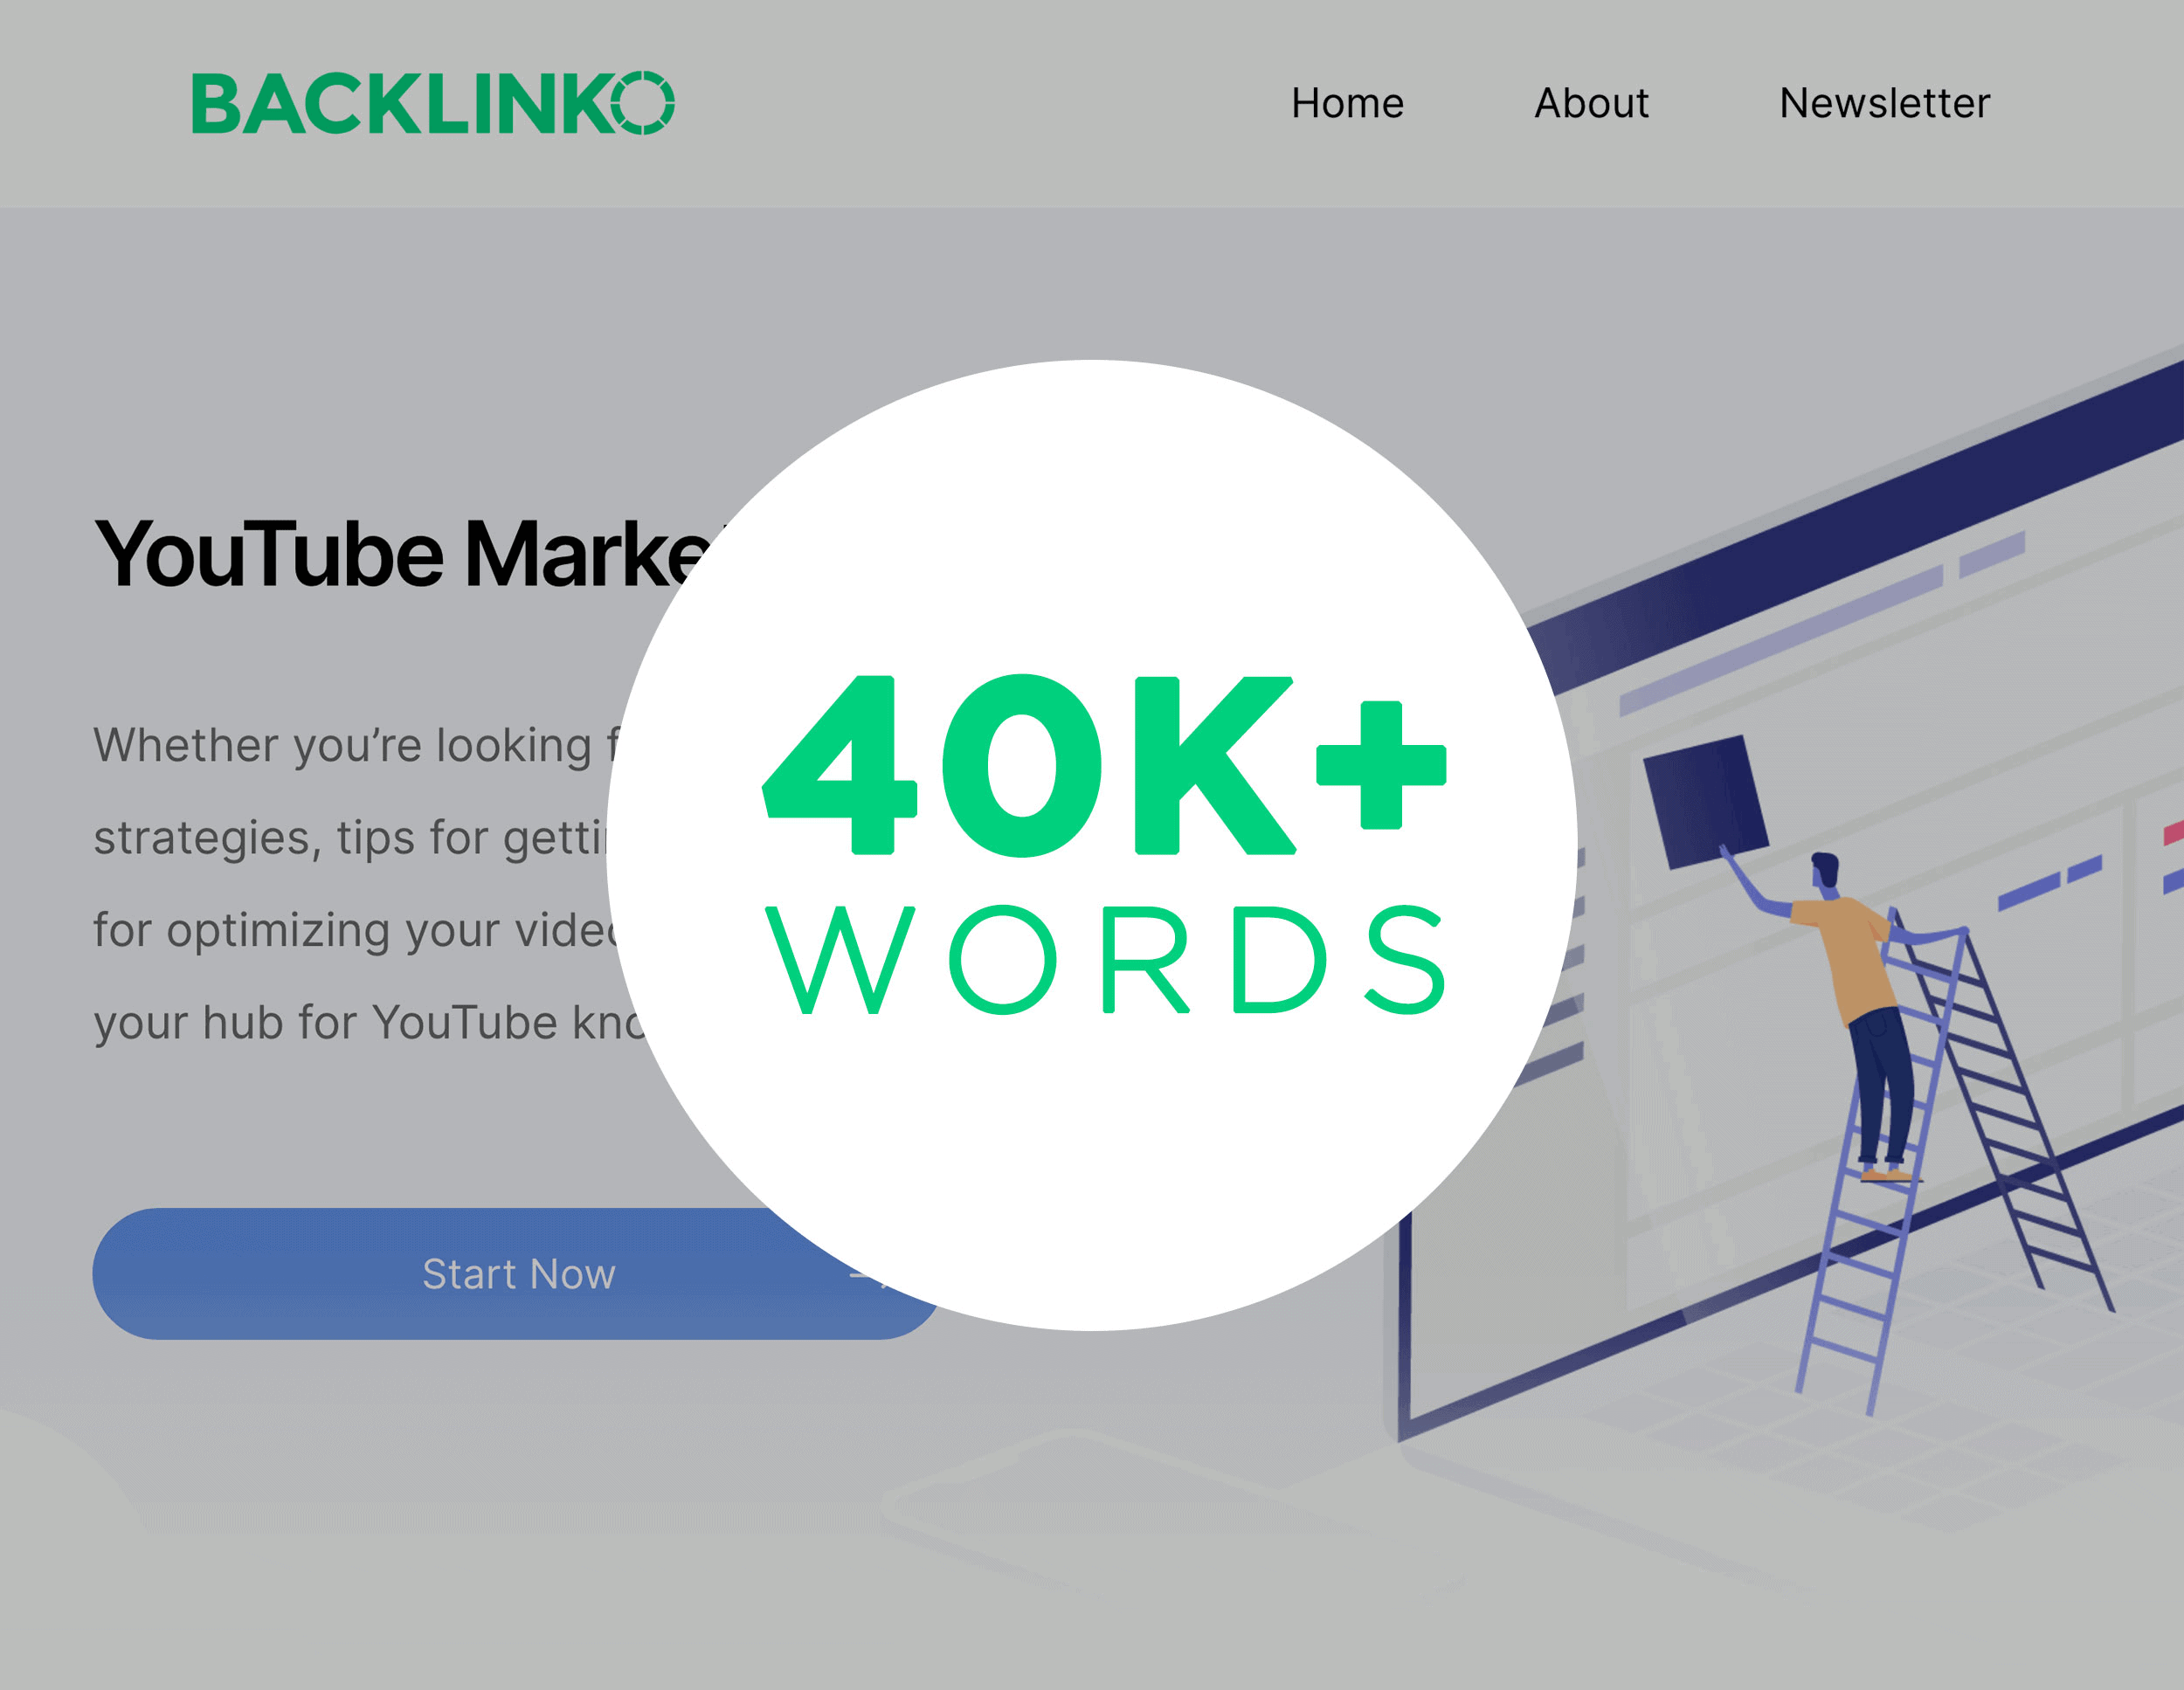 YouTube Marketing Hub – Contains Over 40k Words